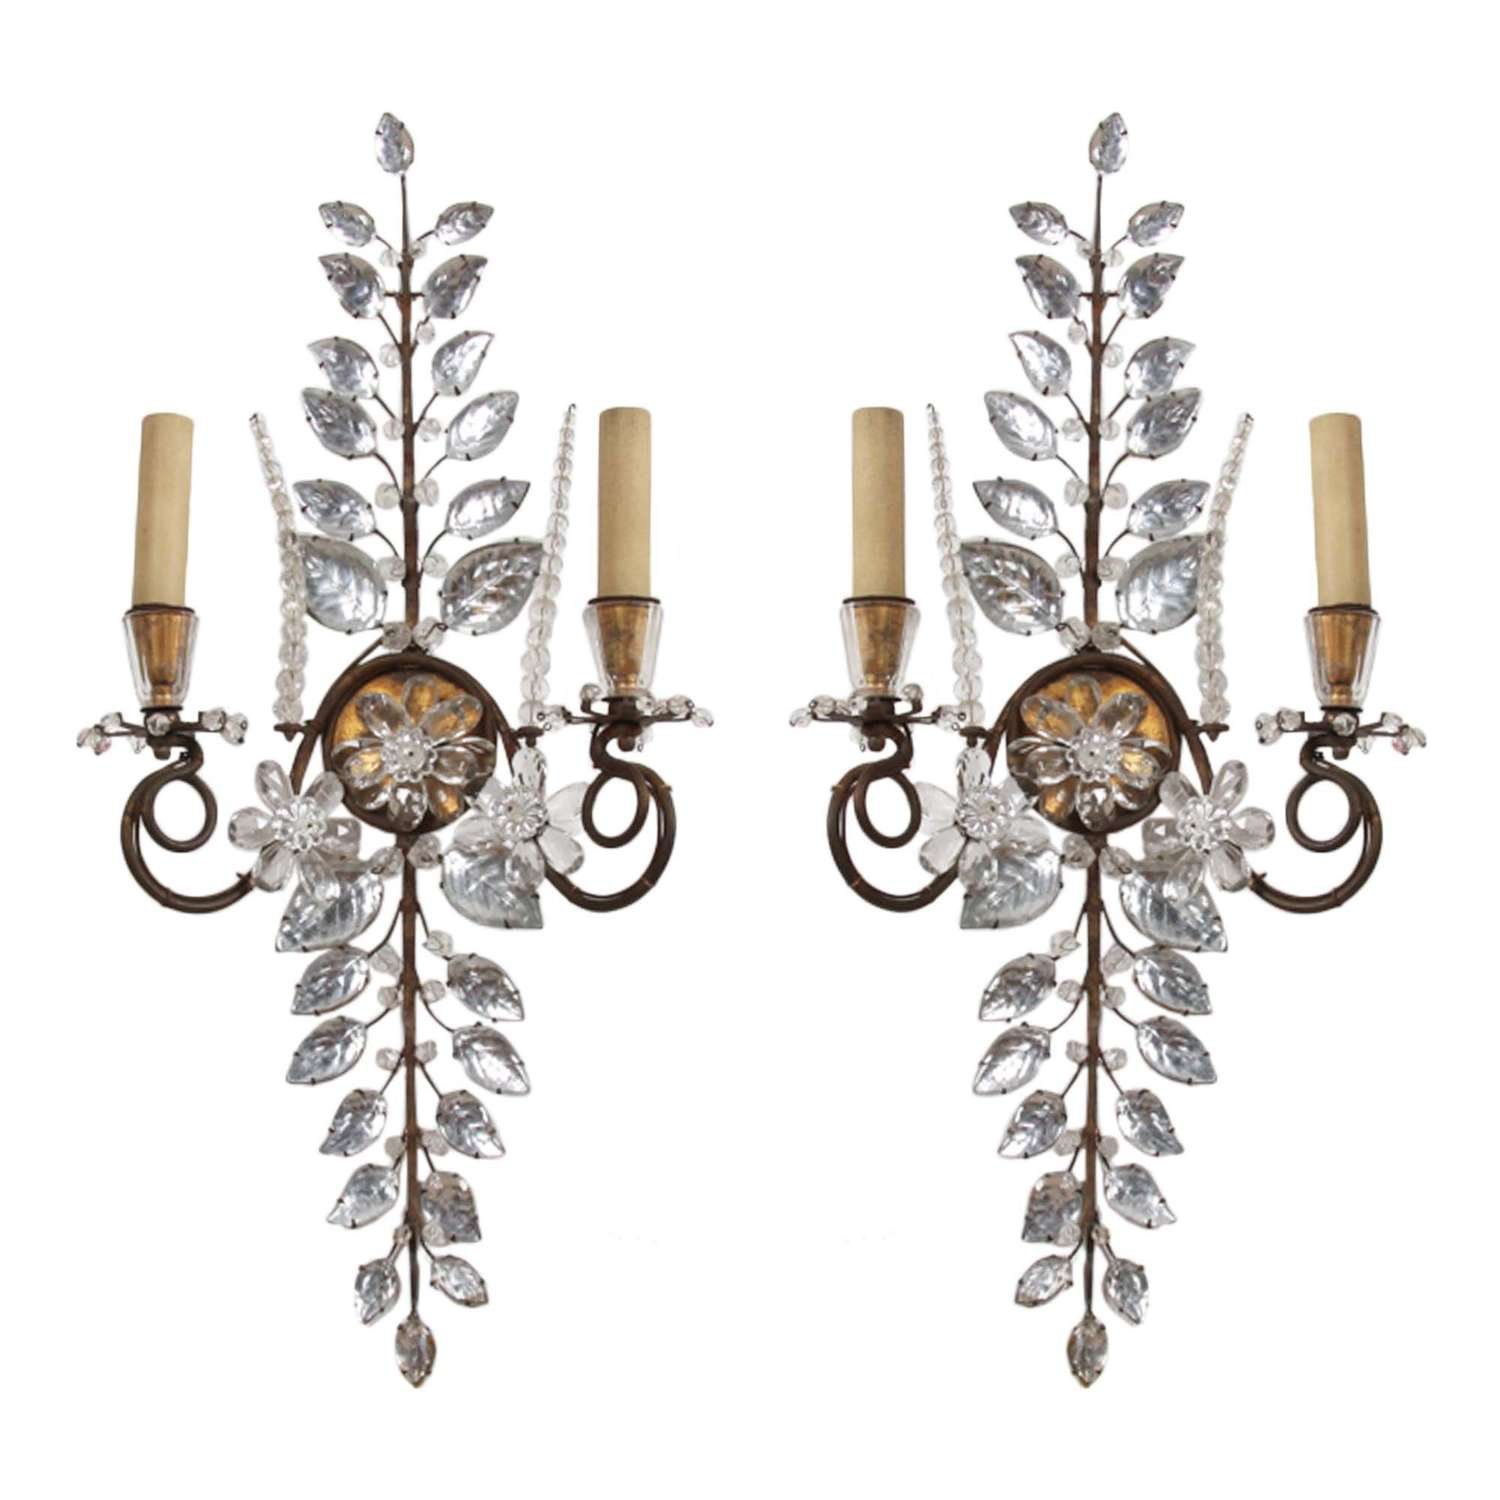 Pair of 1940s Maison Baguès Floral Wall Sconces